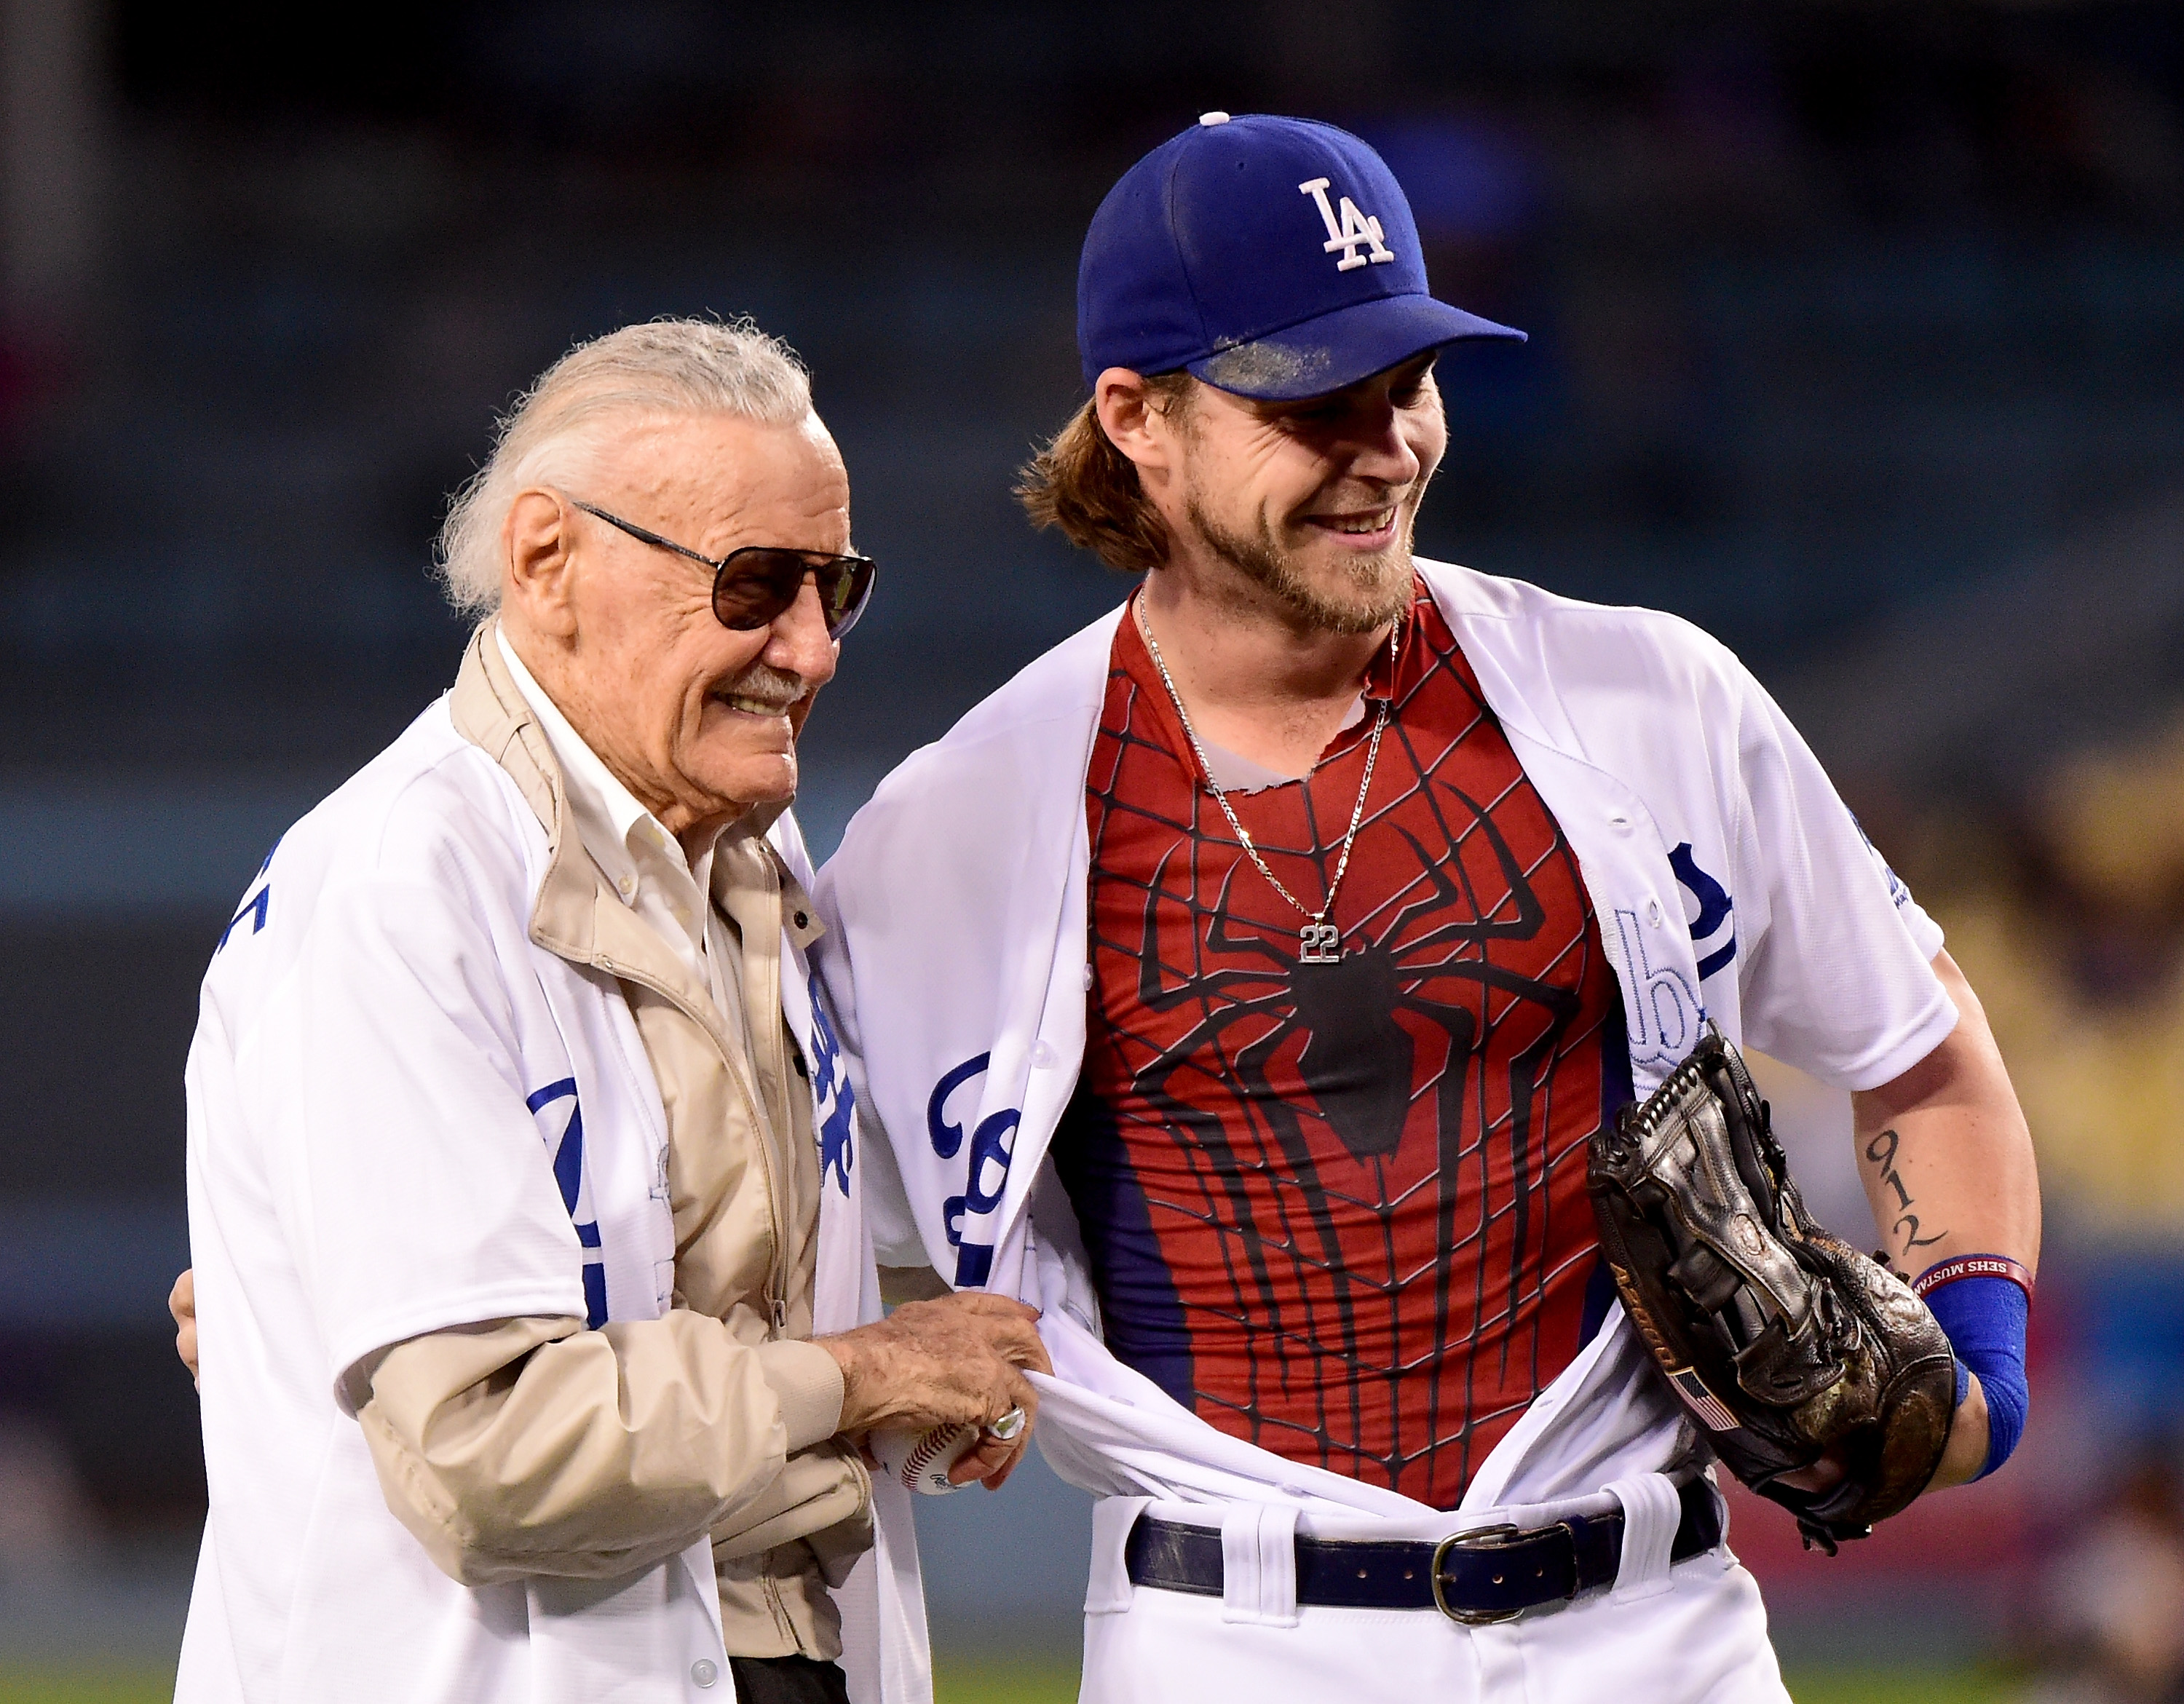 LOS ANGELES, CA - SEPTEMBER 22: Josh Reddick #11 of the Los Angeles Dodgers poses for a for with comic book writer Stan Lee before the game against the Colorado Rockies at Dodger Stadium on September 22, 2016 in Los Angeles, California. (Photo by Harry How/Getty Images)